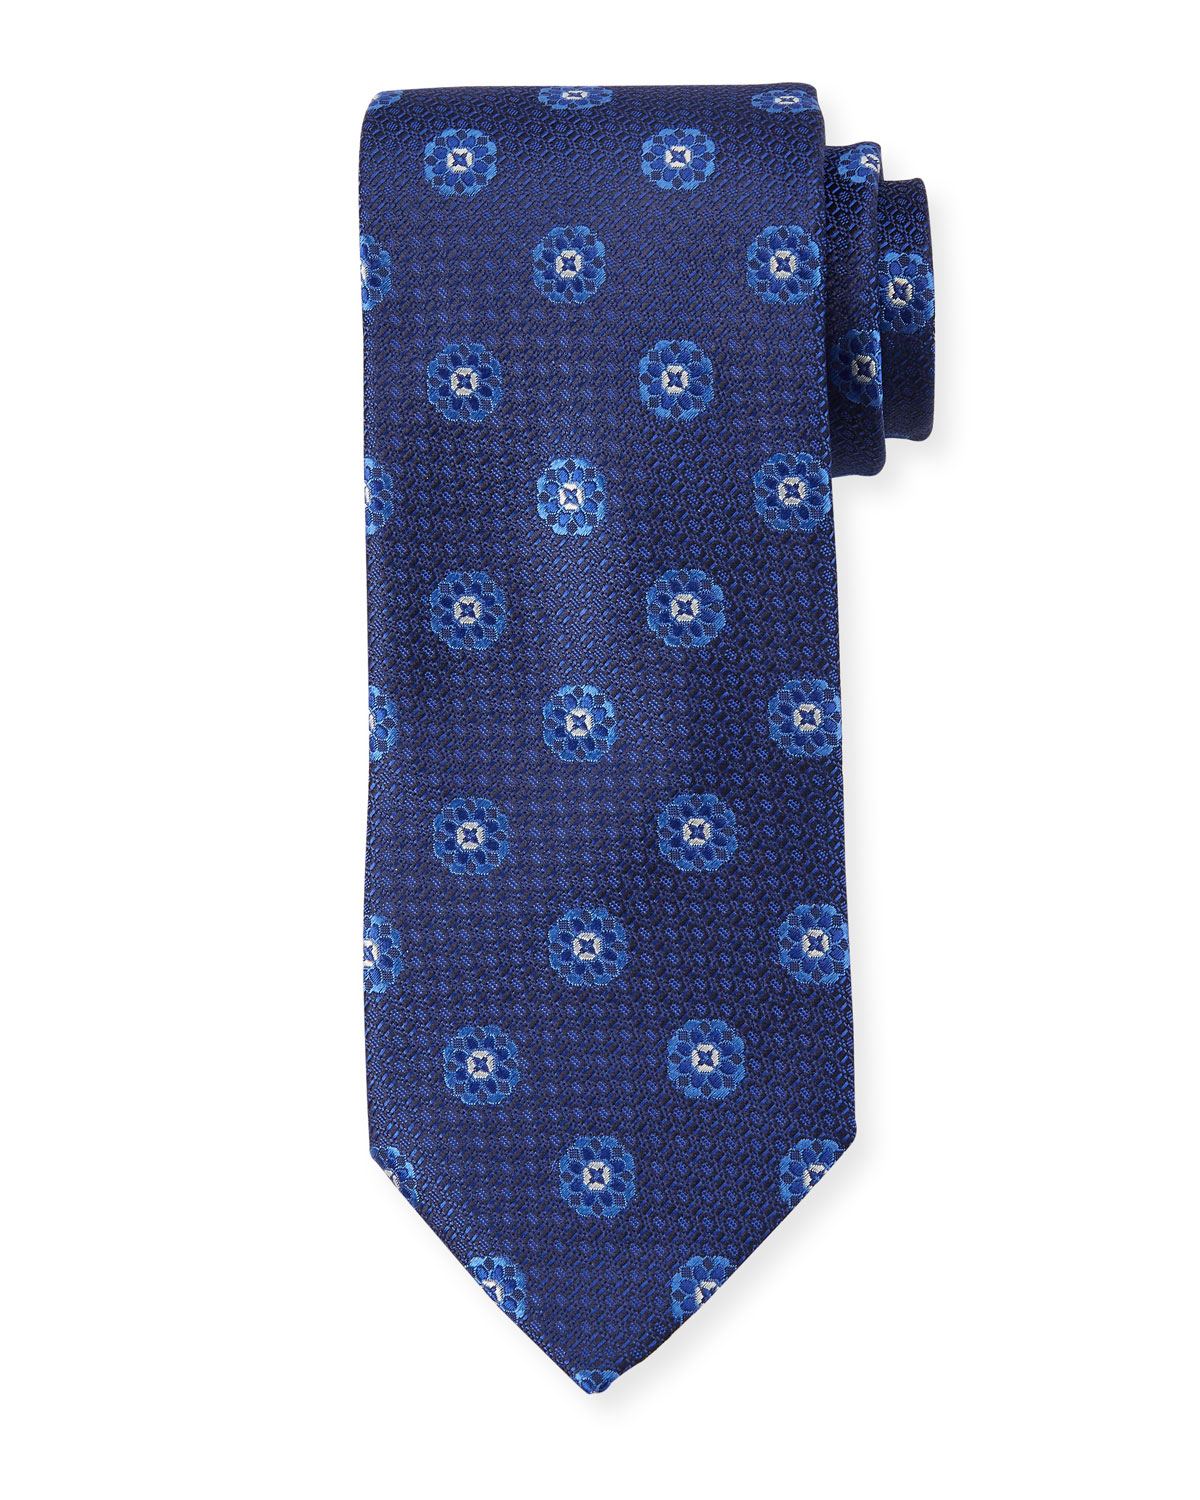 Canali Men's Circle Medallions Silk Tie, Blue